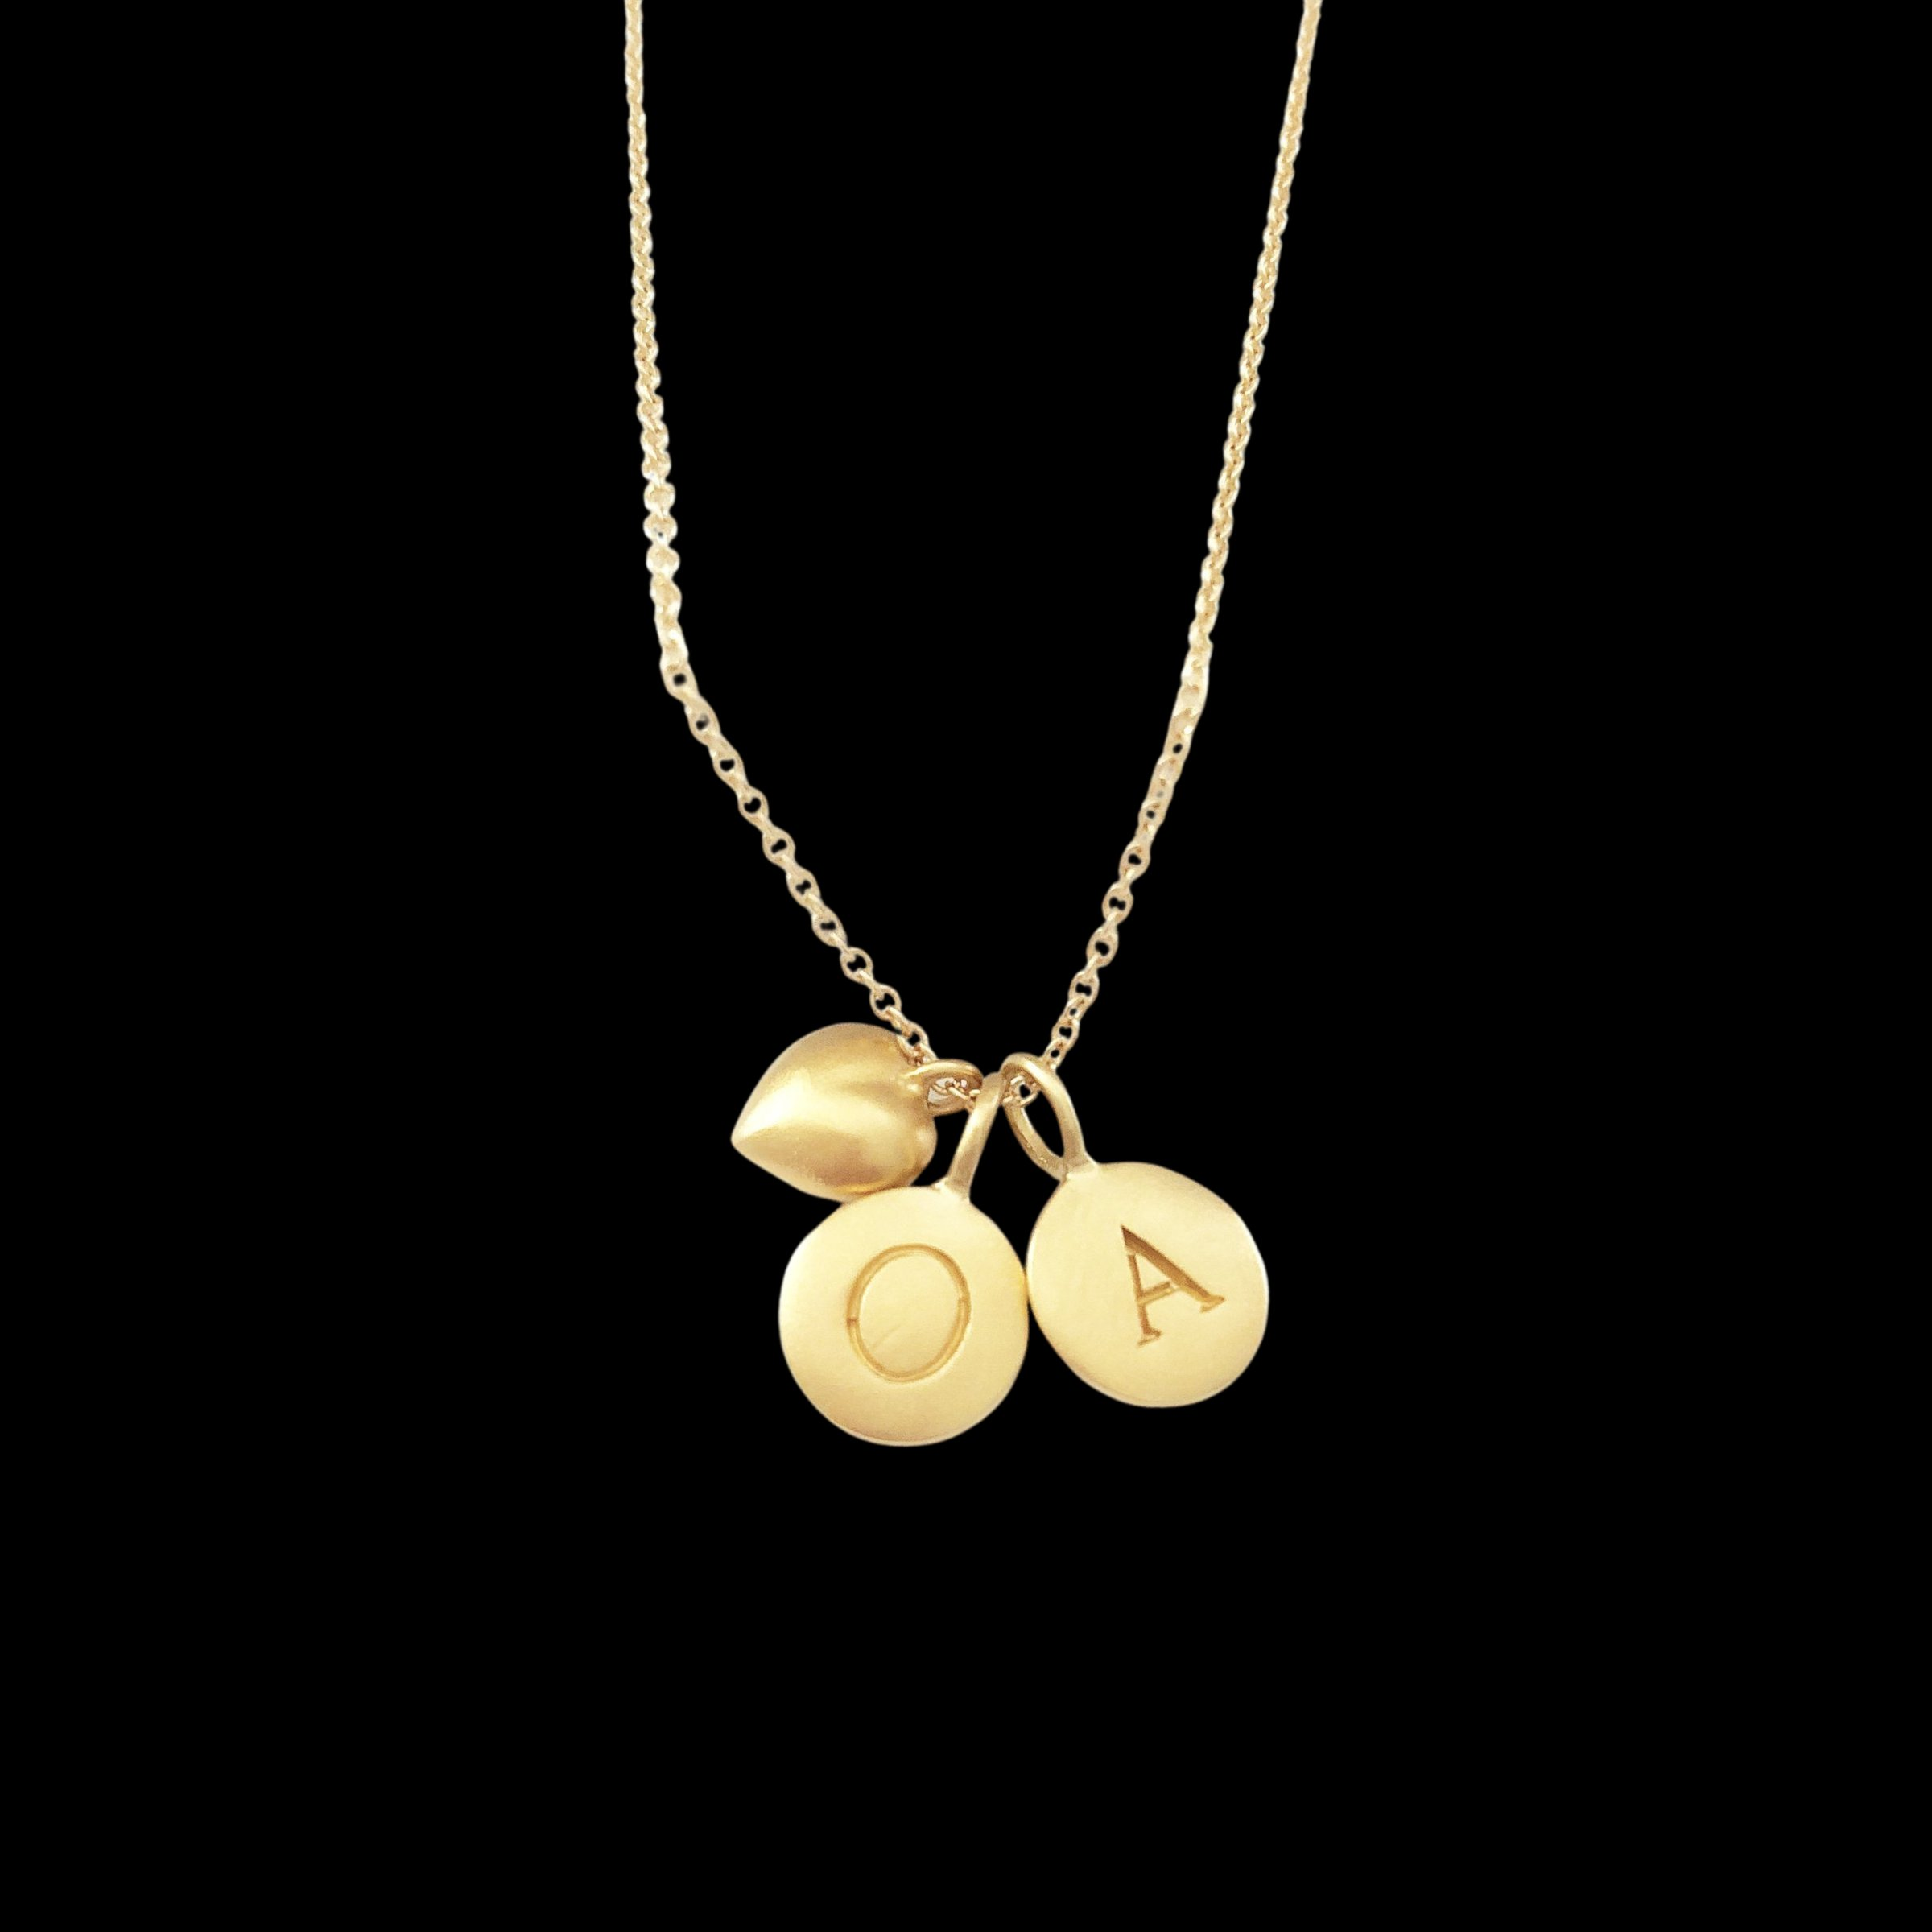 Image of Gold Initials & Puffed Heart Charm Necklace